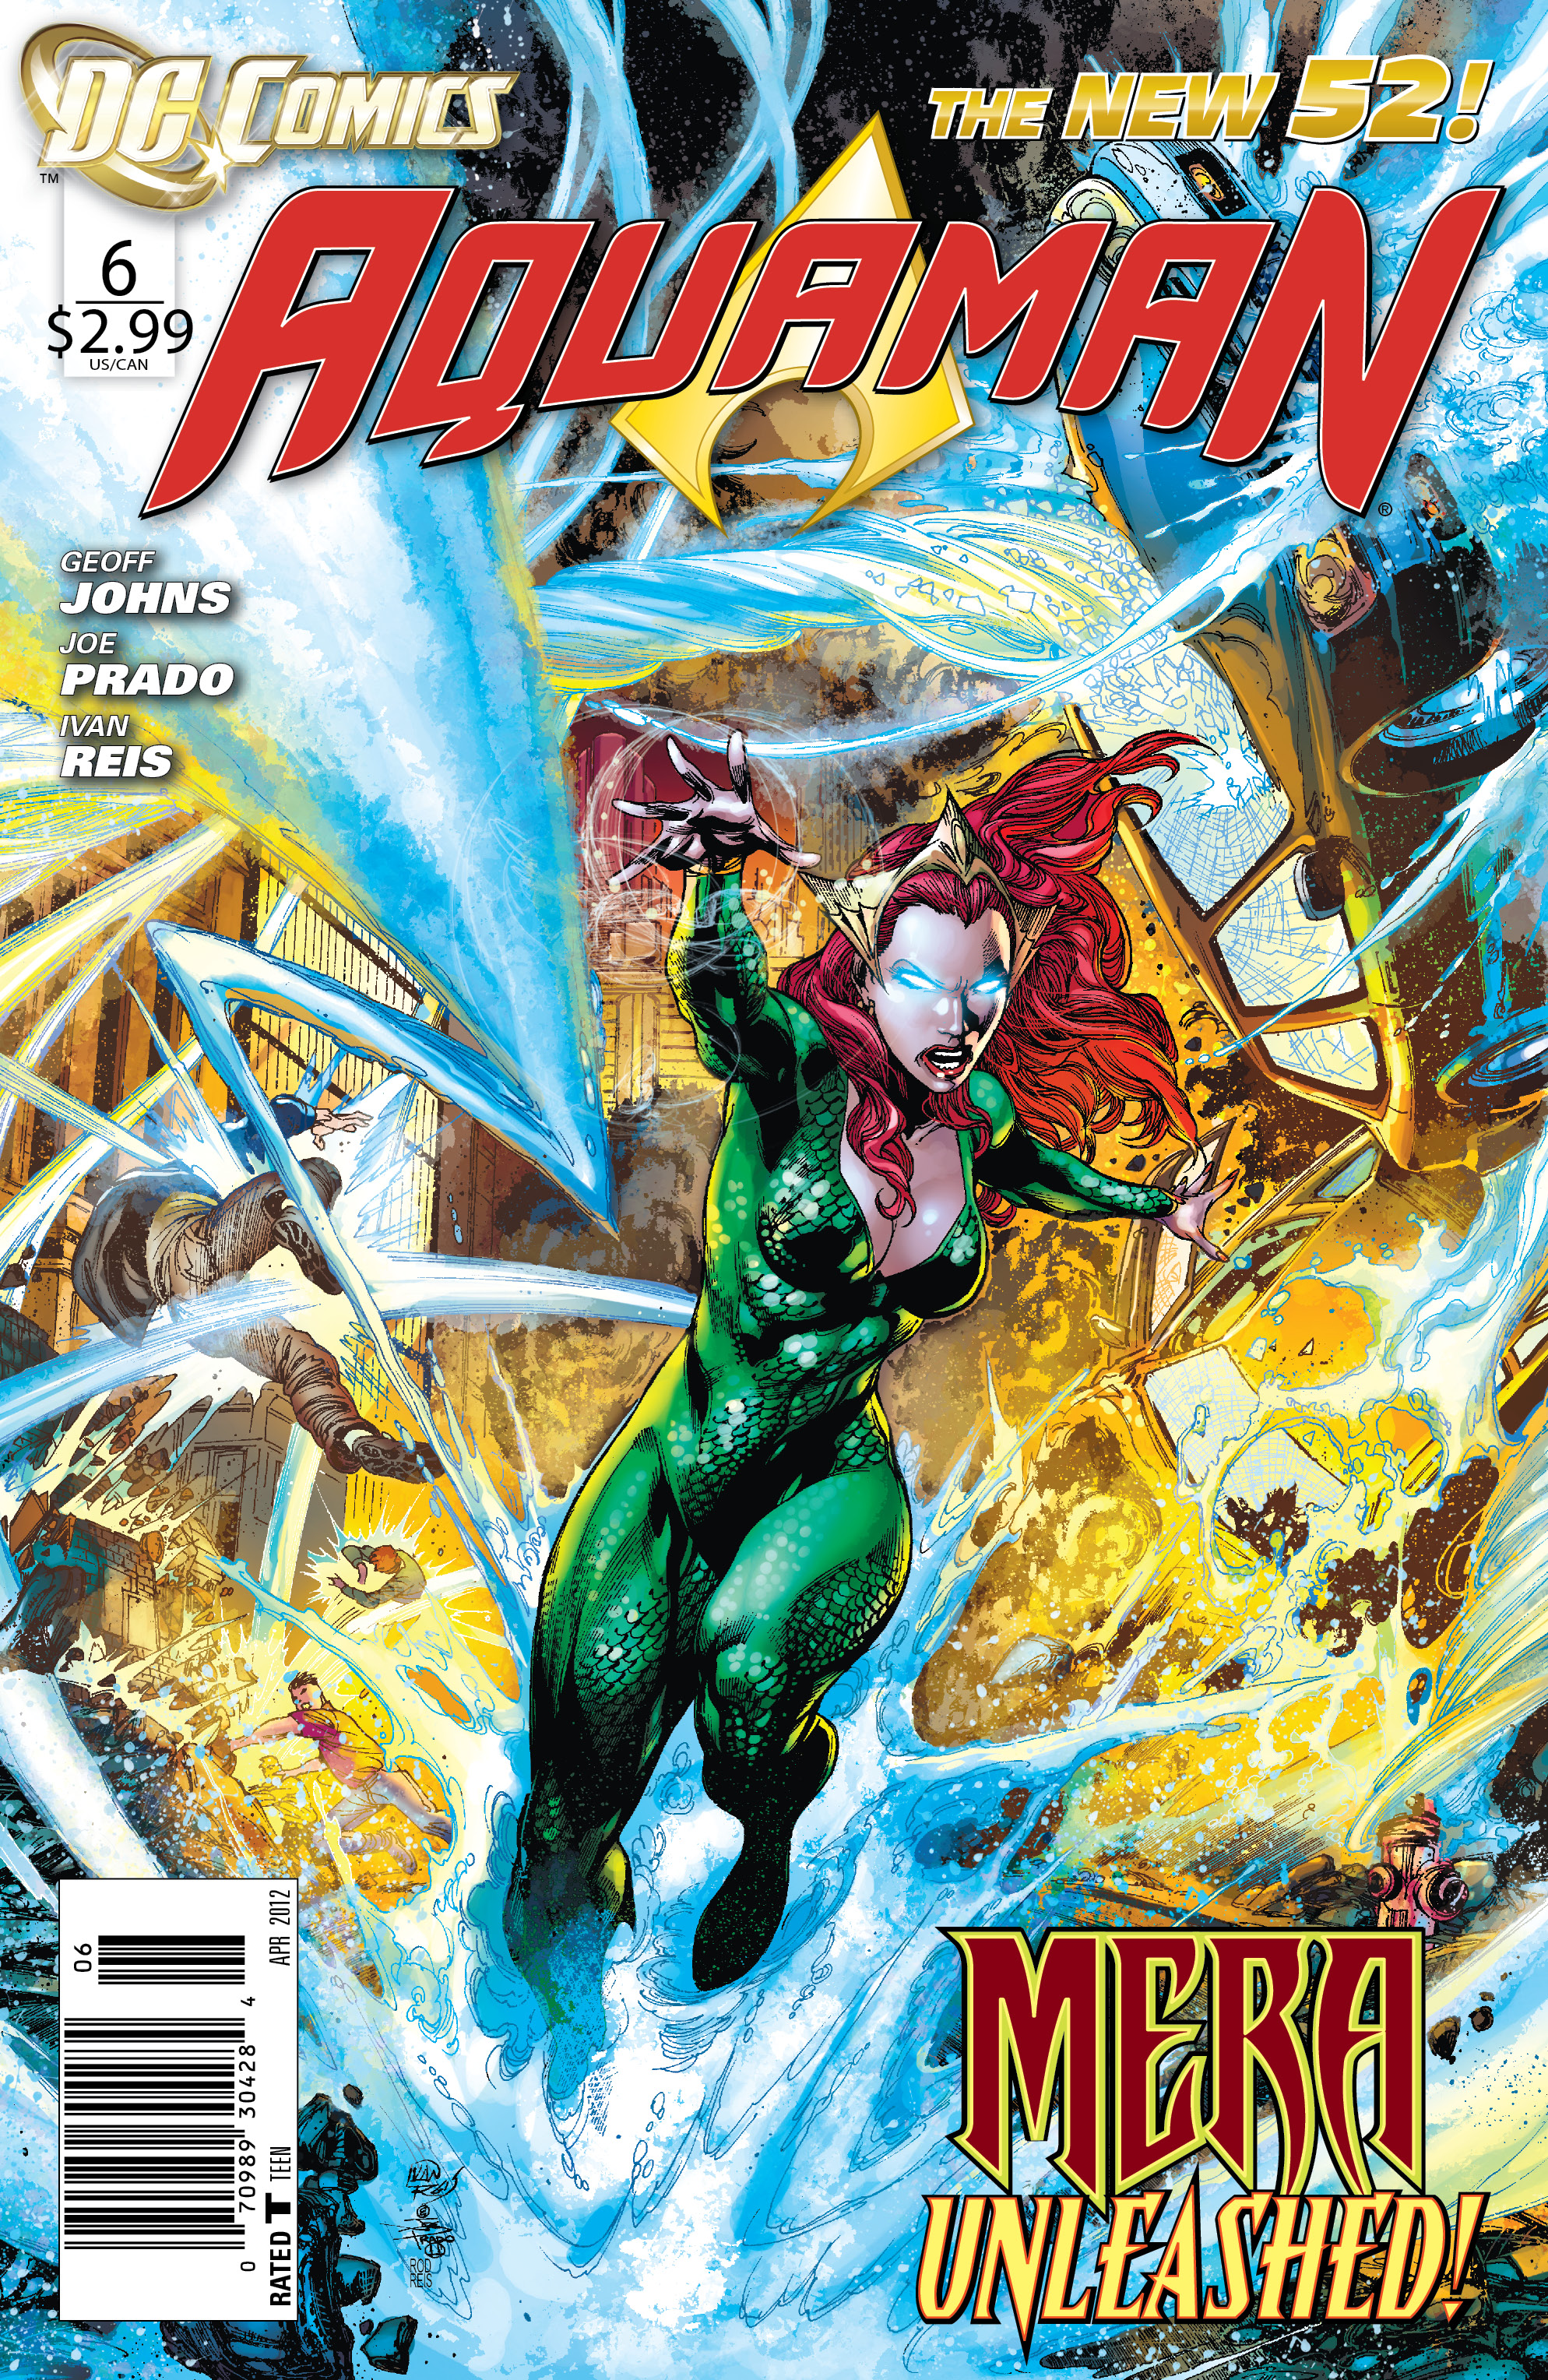 AQUAMAN VOL 1 TRENCH NEW 52 By Johns Geoff - Hardcover